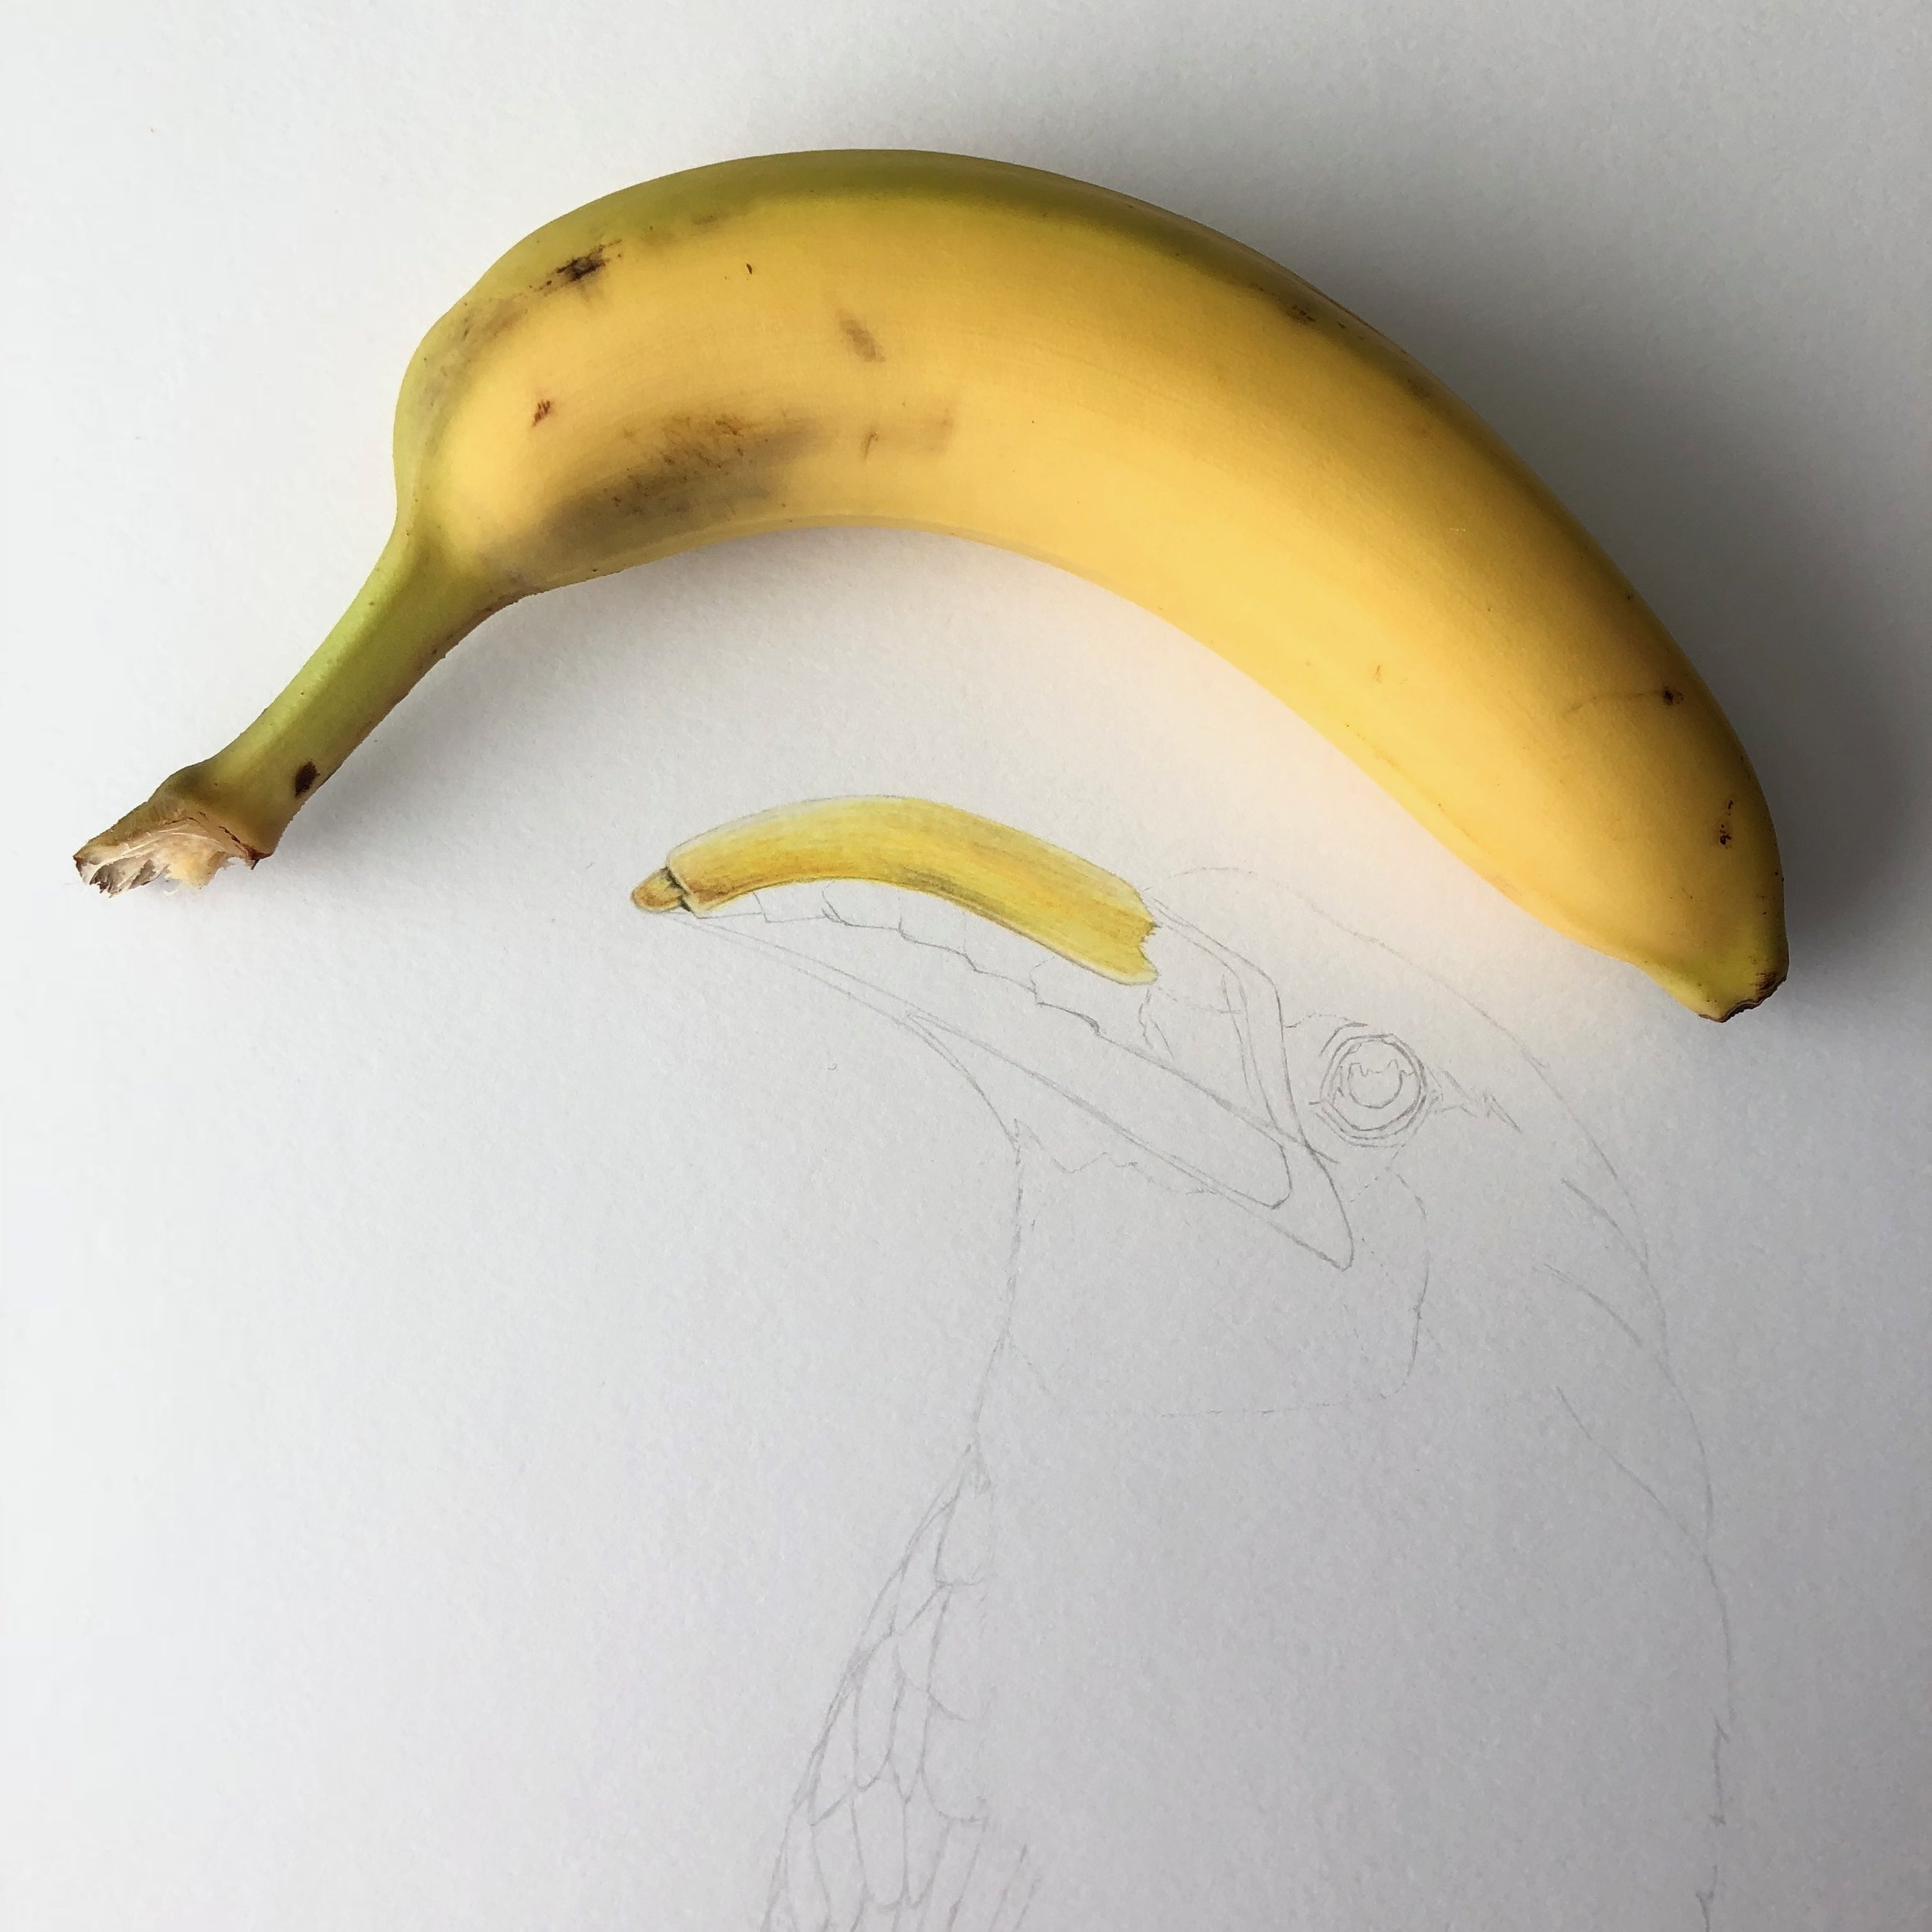 """And this was how he got his online nickname """"Banana Tim"""". I needed some visual assistance and coincidentally had the perfect banana in my kitchen. No bananas were injured in the making of this image, although it did become my afternoon snack =)"""